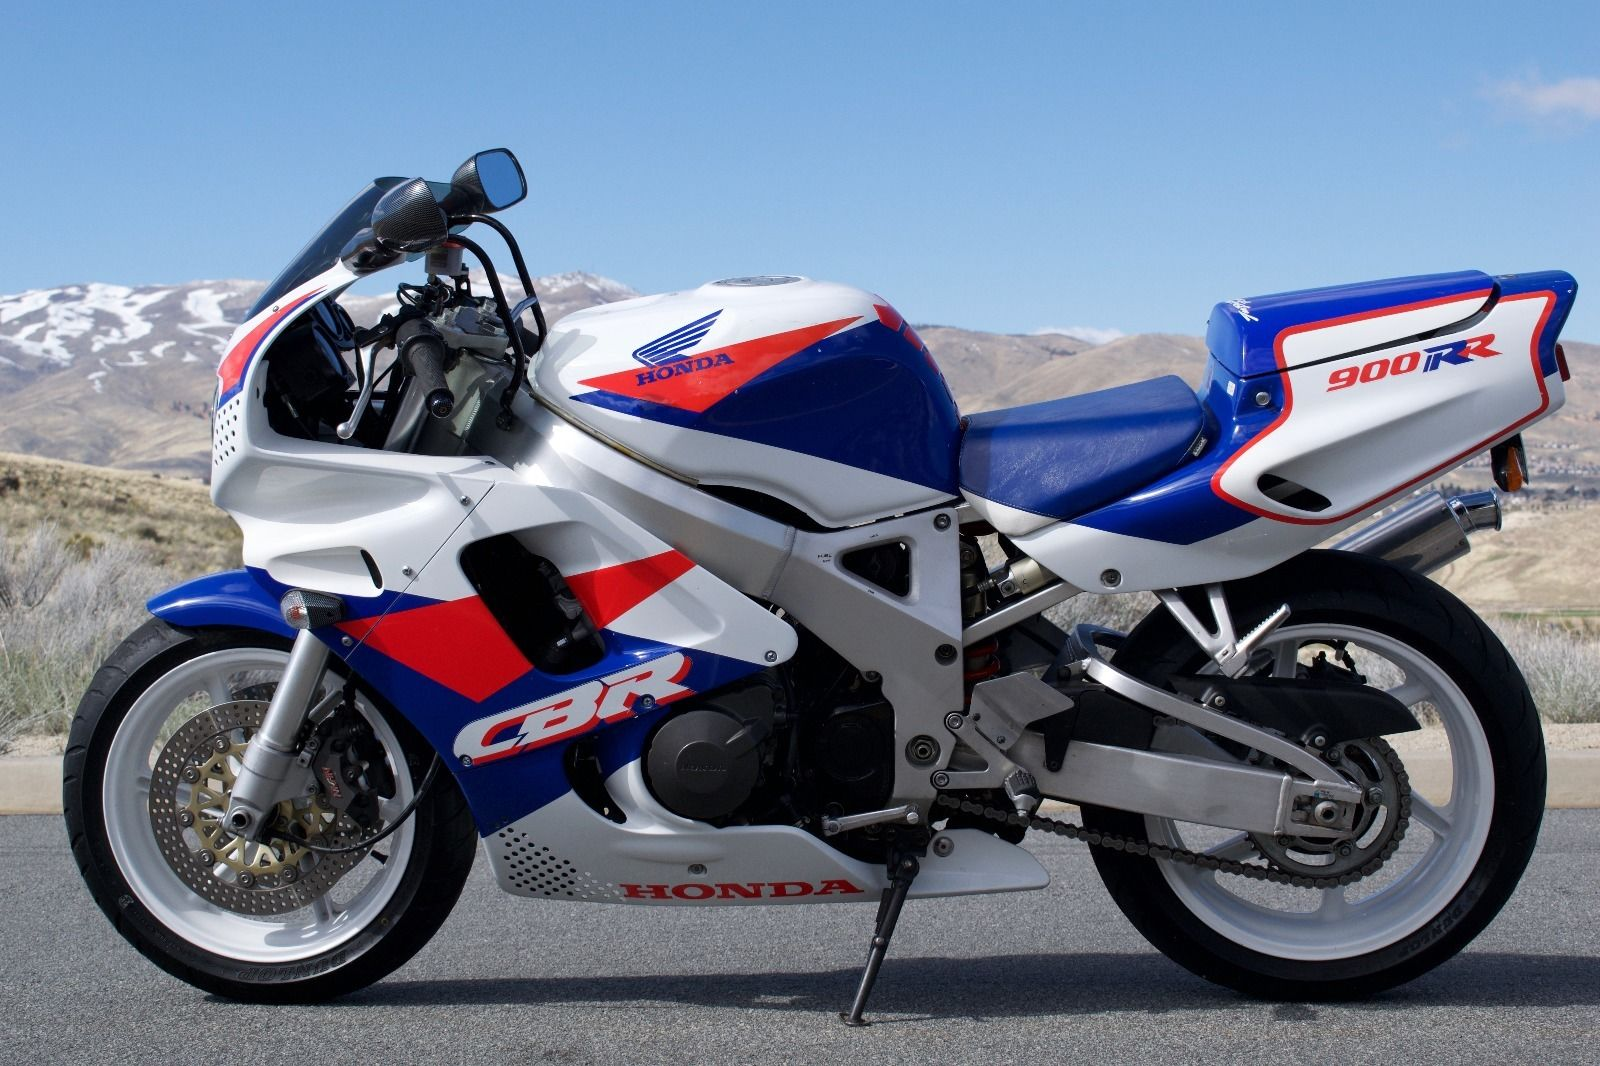 In time the line evolved to the 929RR and 954RR, but the bike that started  the revolution was this one: the Honda 900RR.